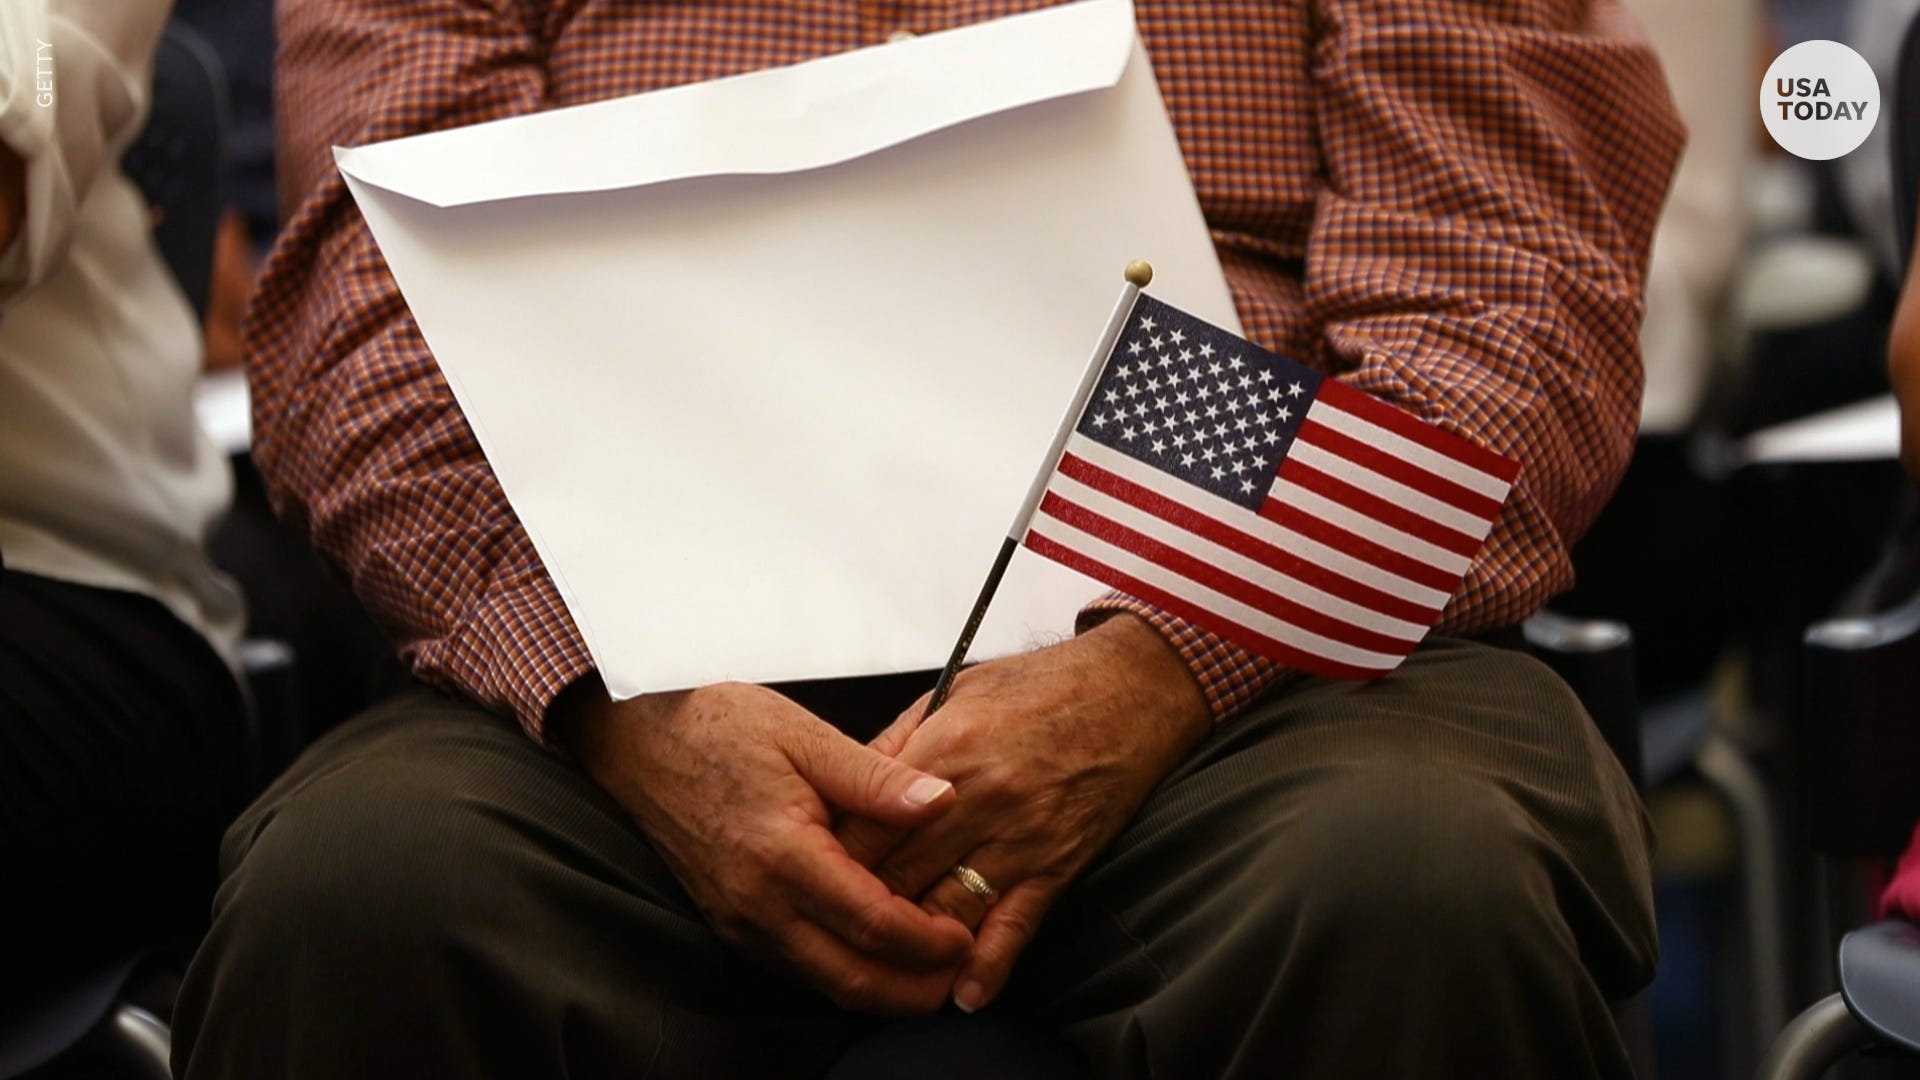 U.S. naturalization test: Can you pass the test to become a U.S. citizen?